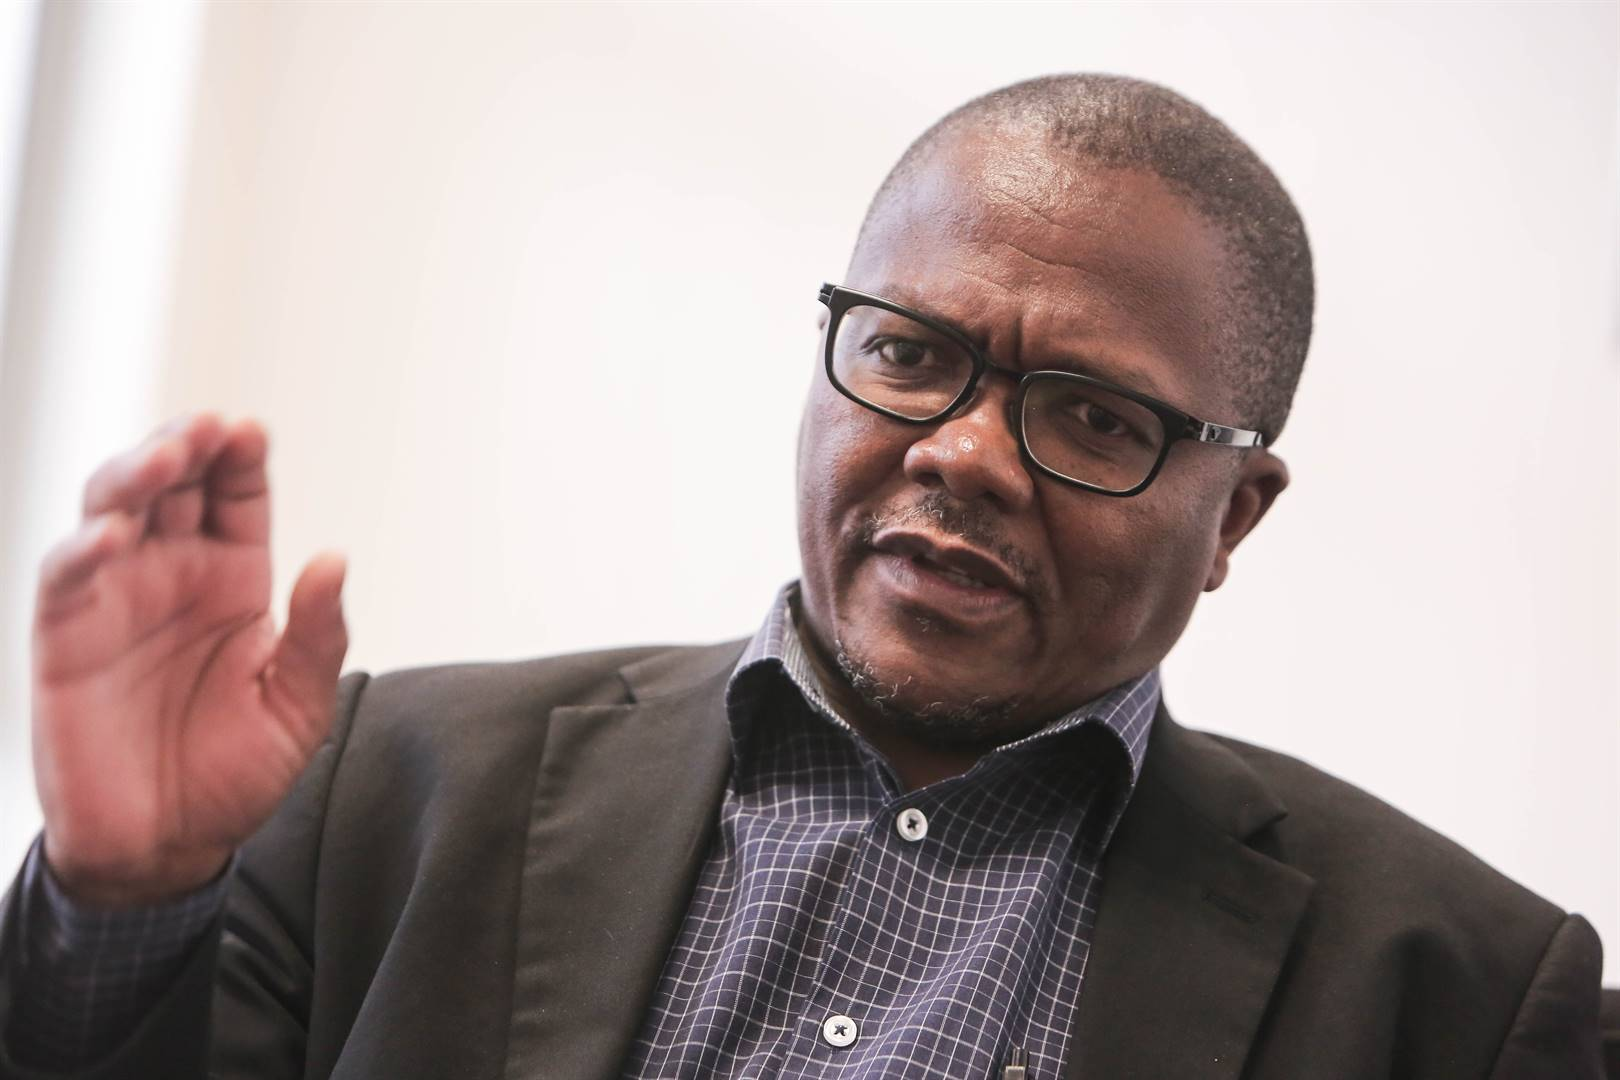 University of Fort Hare Vice Chancellor, Professor Sakhela Buhlungu during an interview on March 24, 2018 in East London, South Africa. Buhlungu's attempts to root out corruption and maladministration at the institution have landed him with 24-hour security. Picture: Alaister Russell / Gallo Images / Sunday Times